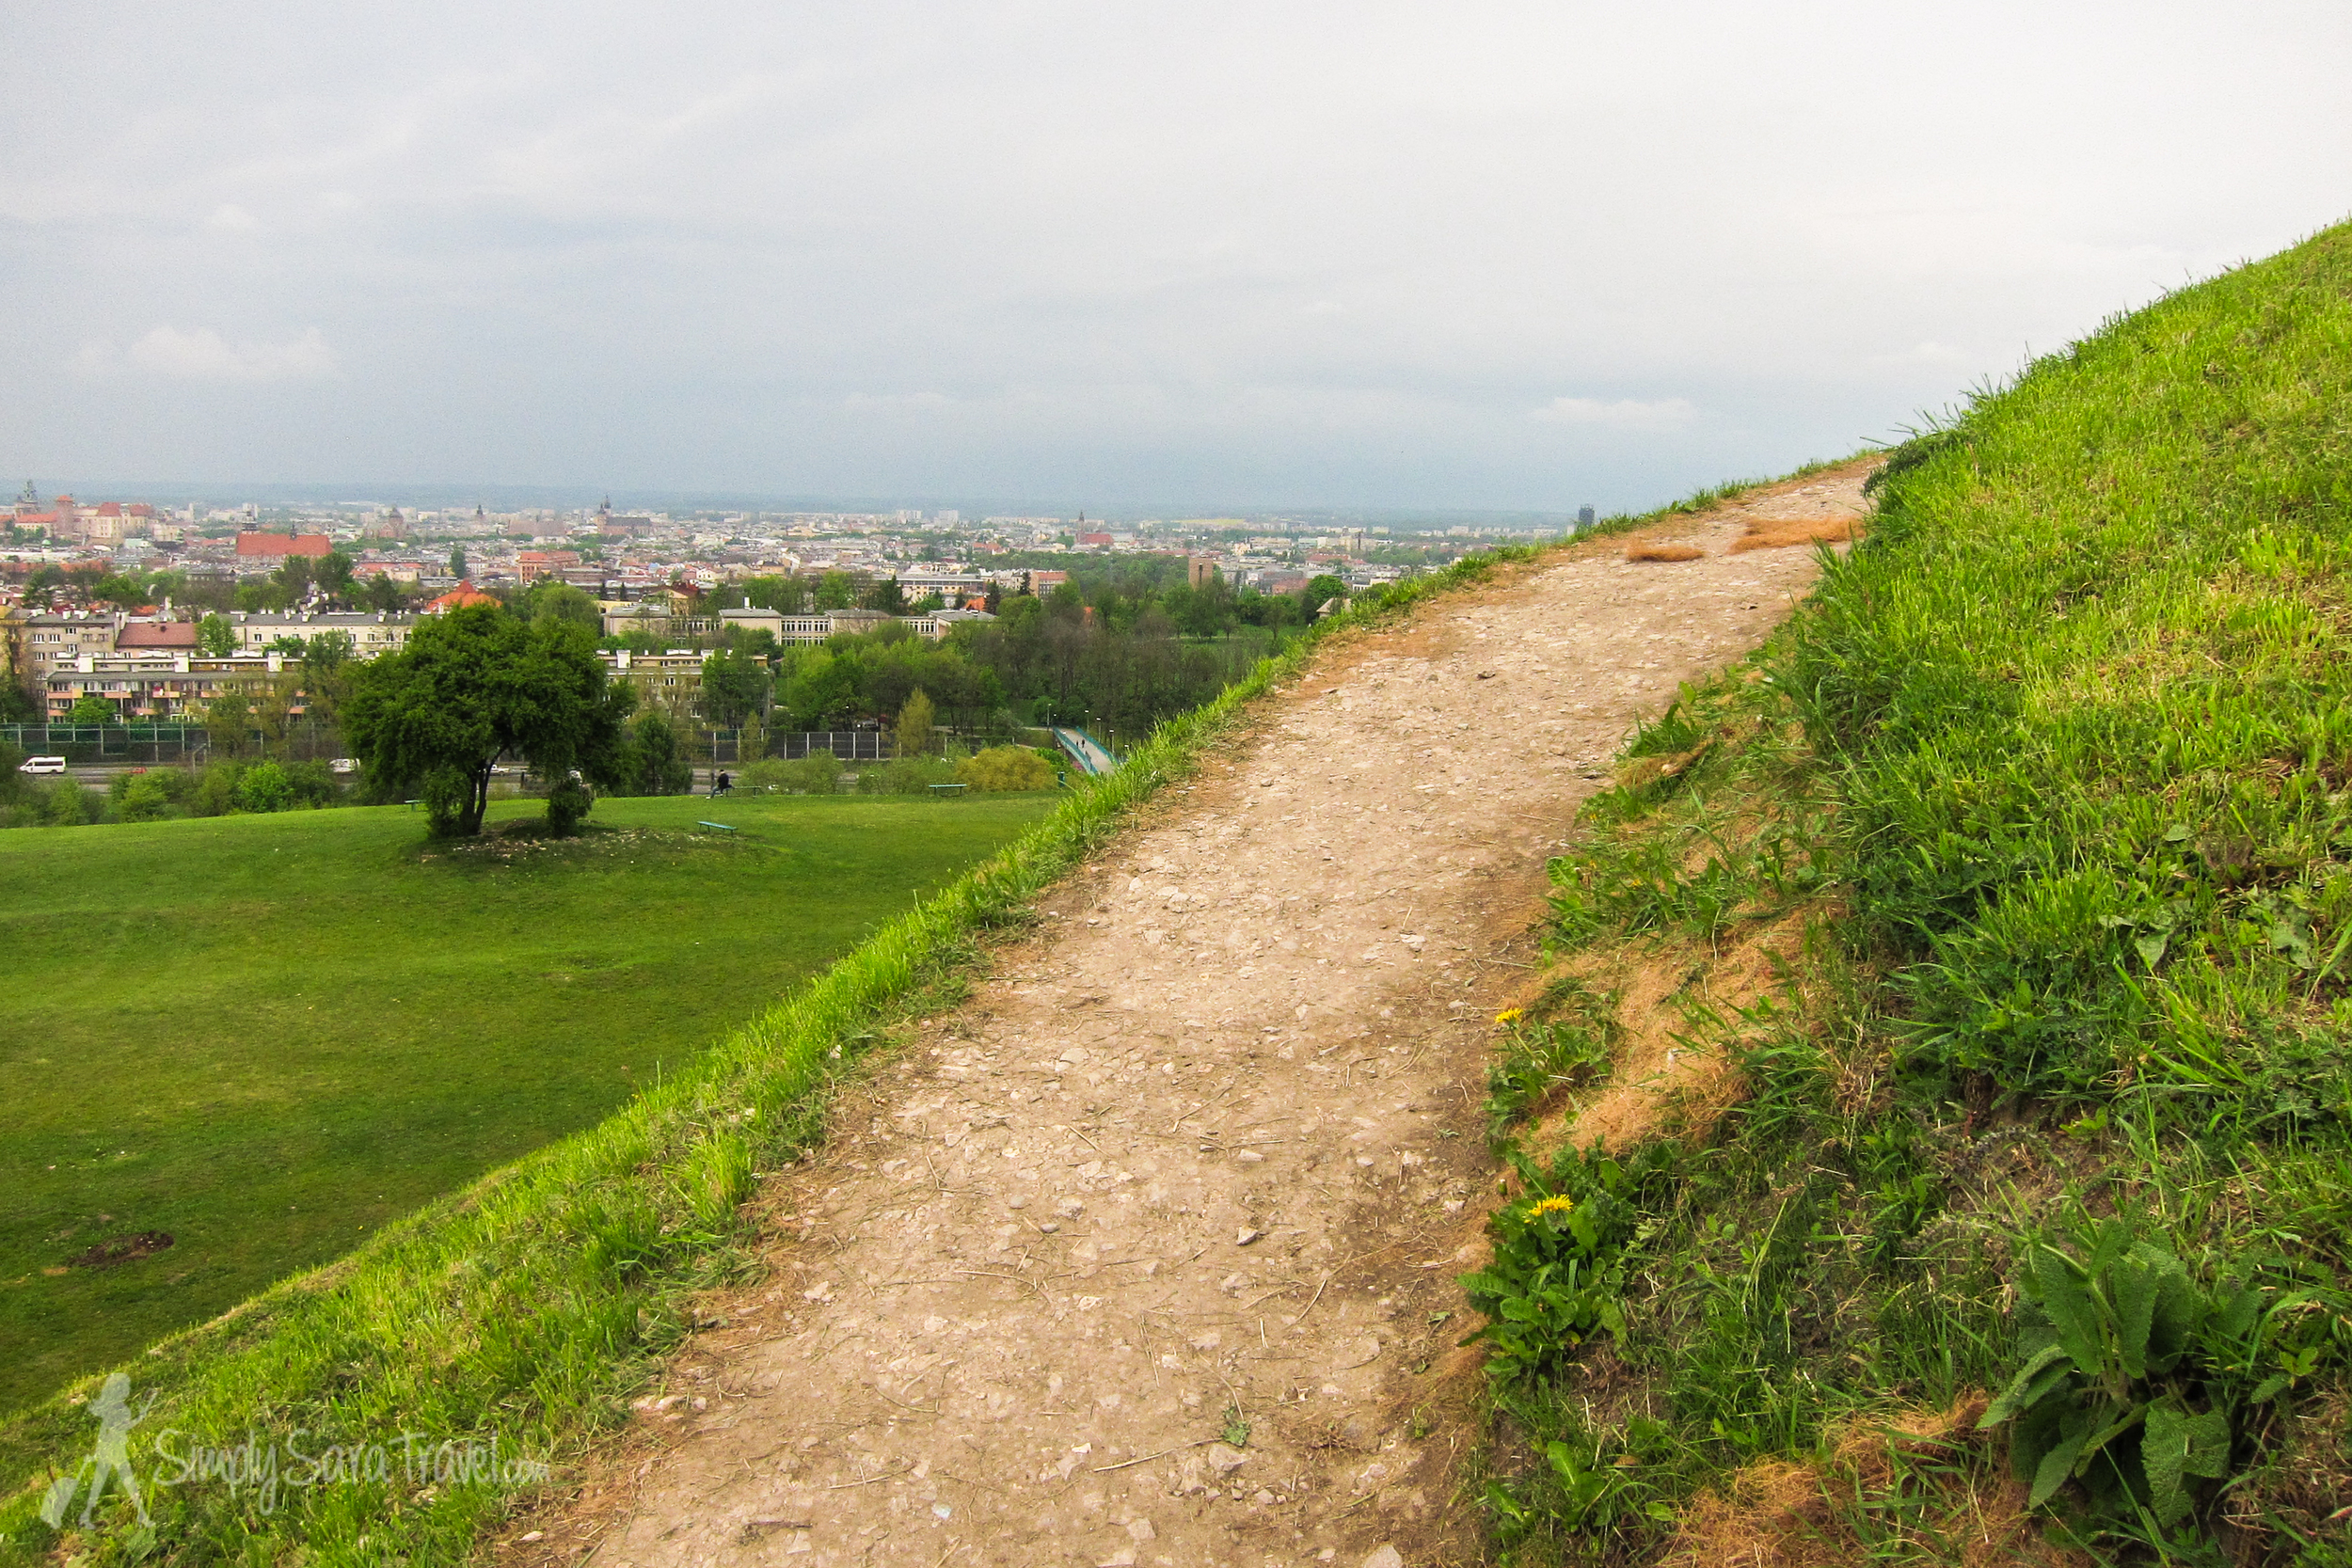 If you are someone who needs a break from a city to be refreshed by green space every now and then, consider a walk out to Krakow's Kopiec Krakusa.